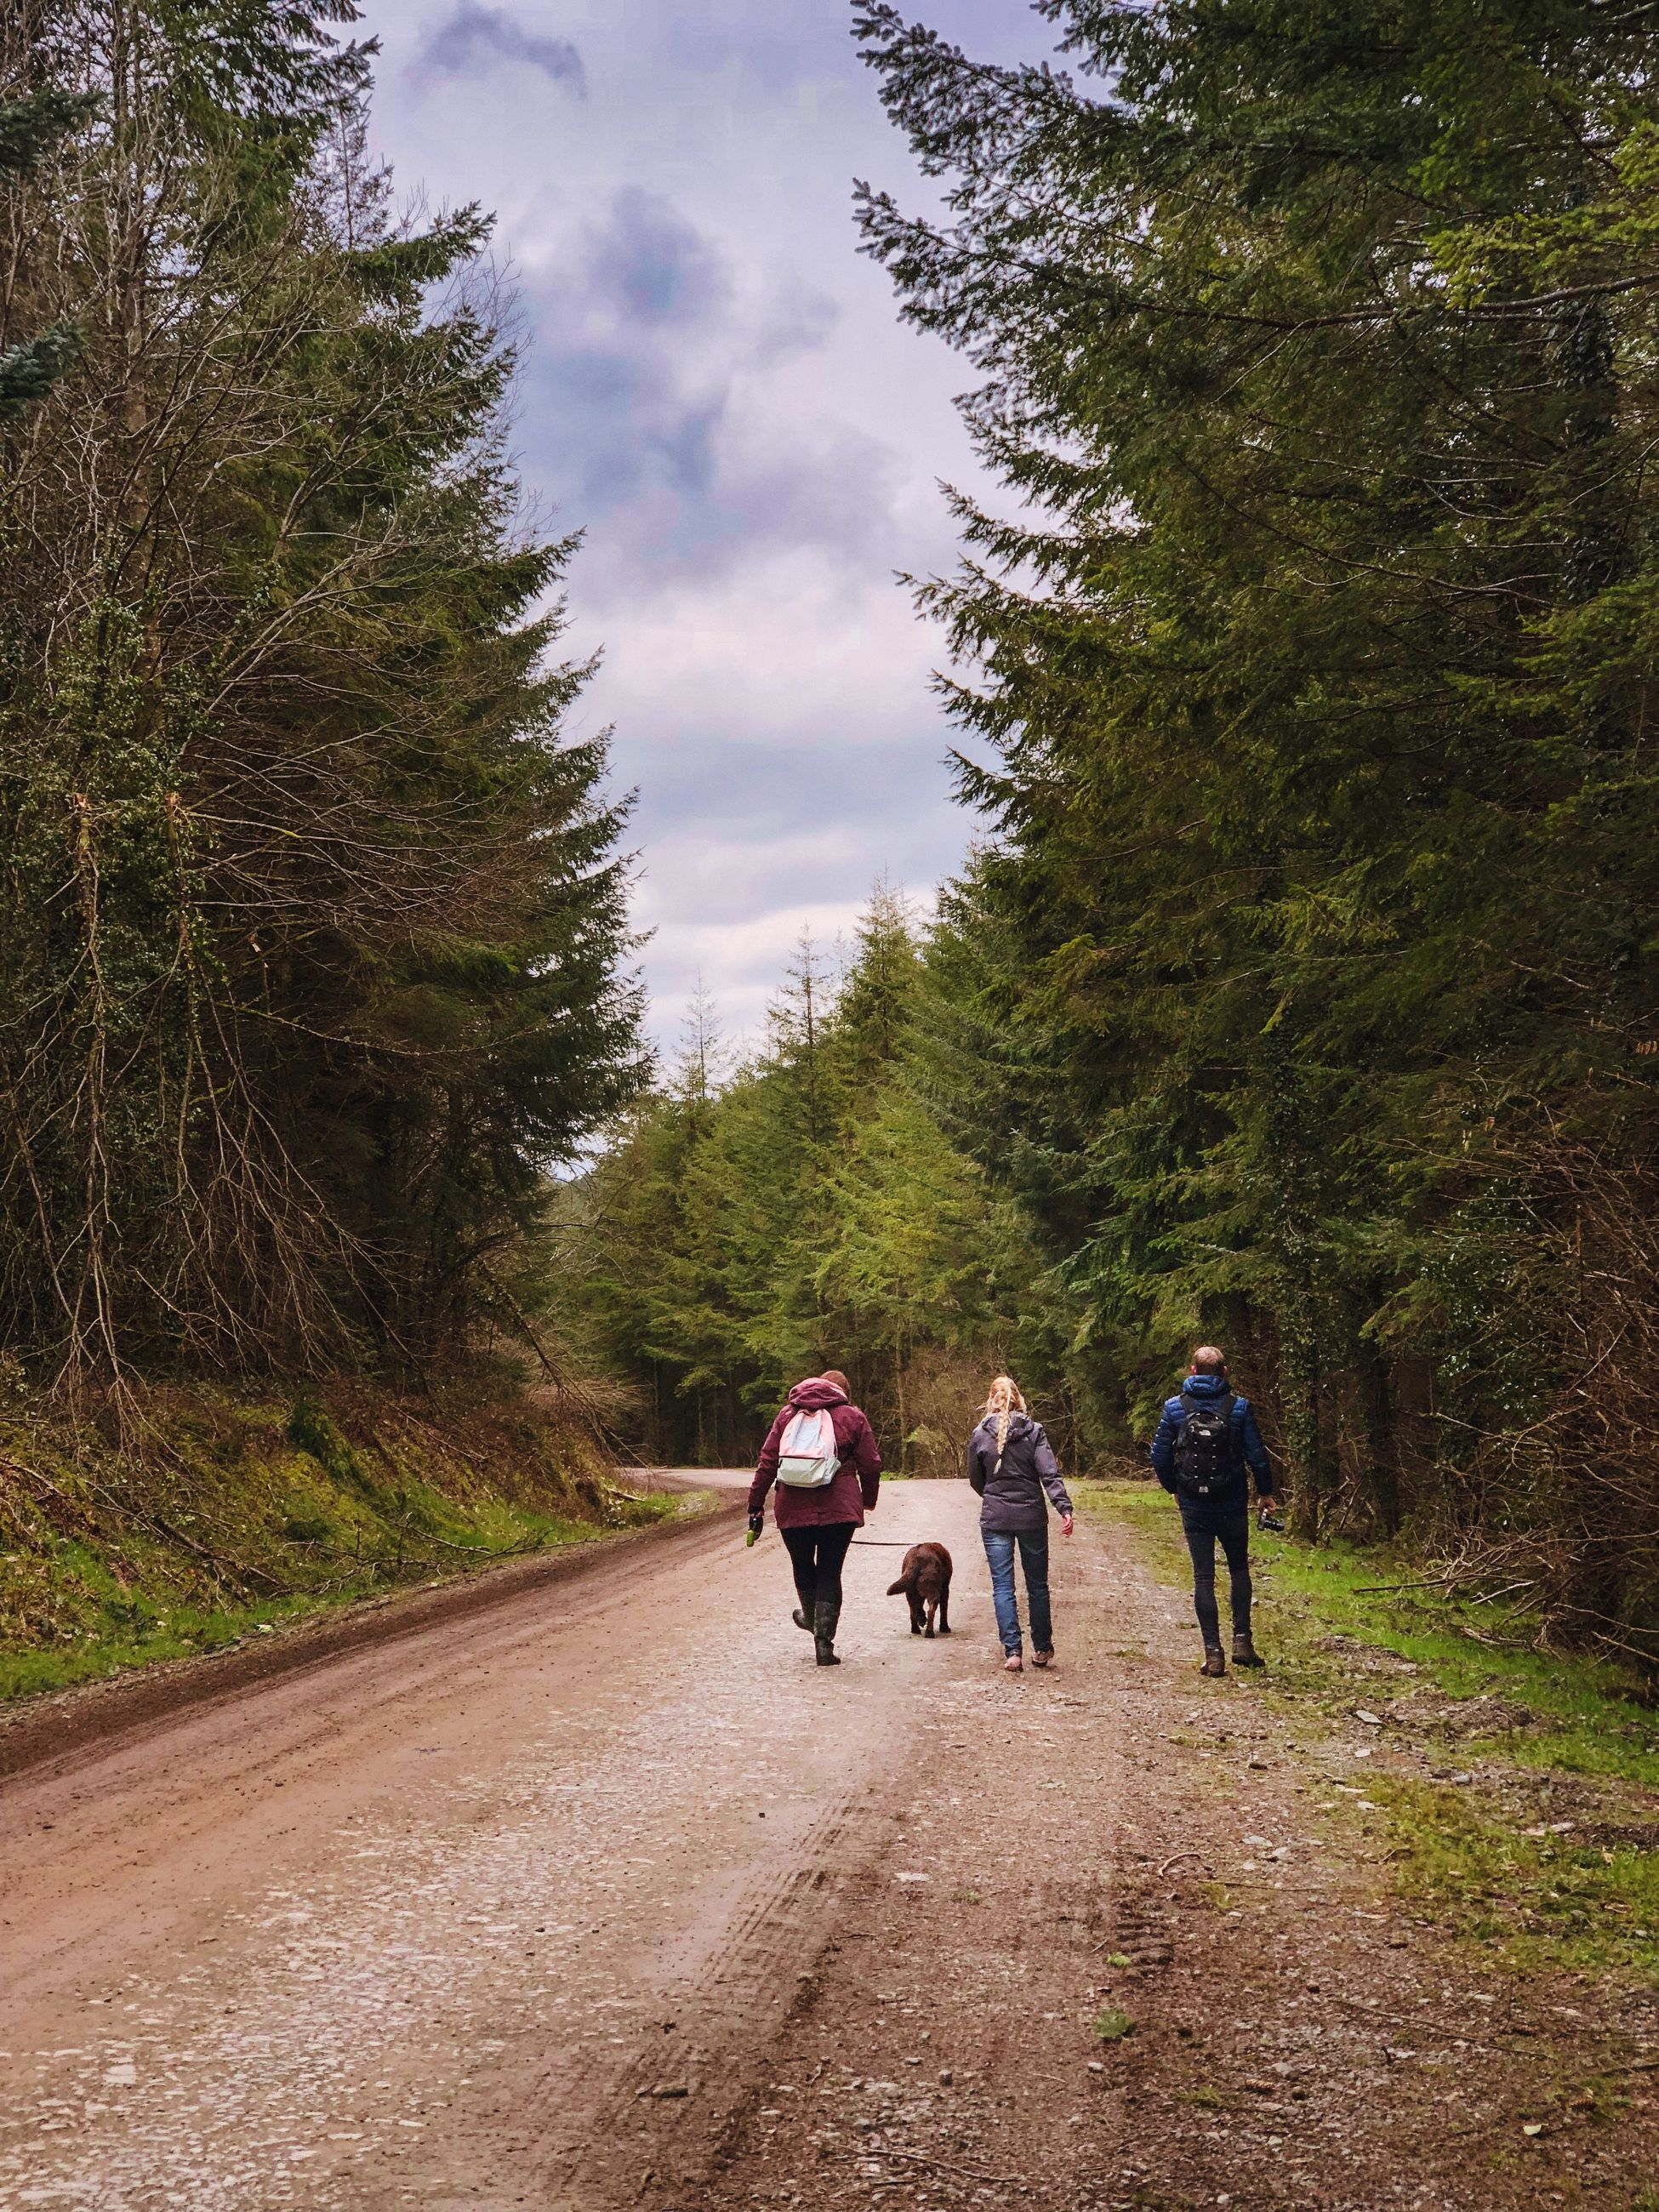 tree, plant, walking, rear view, group of people, full length, real people, women, direction, leisure activity, the way forward, nature, sky, men, lifestyles, transportation, road, cloud - sky, adult, day, outdoors